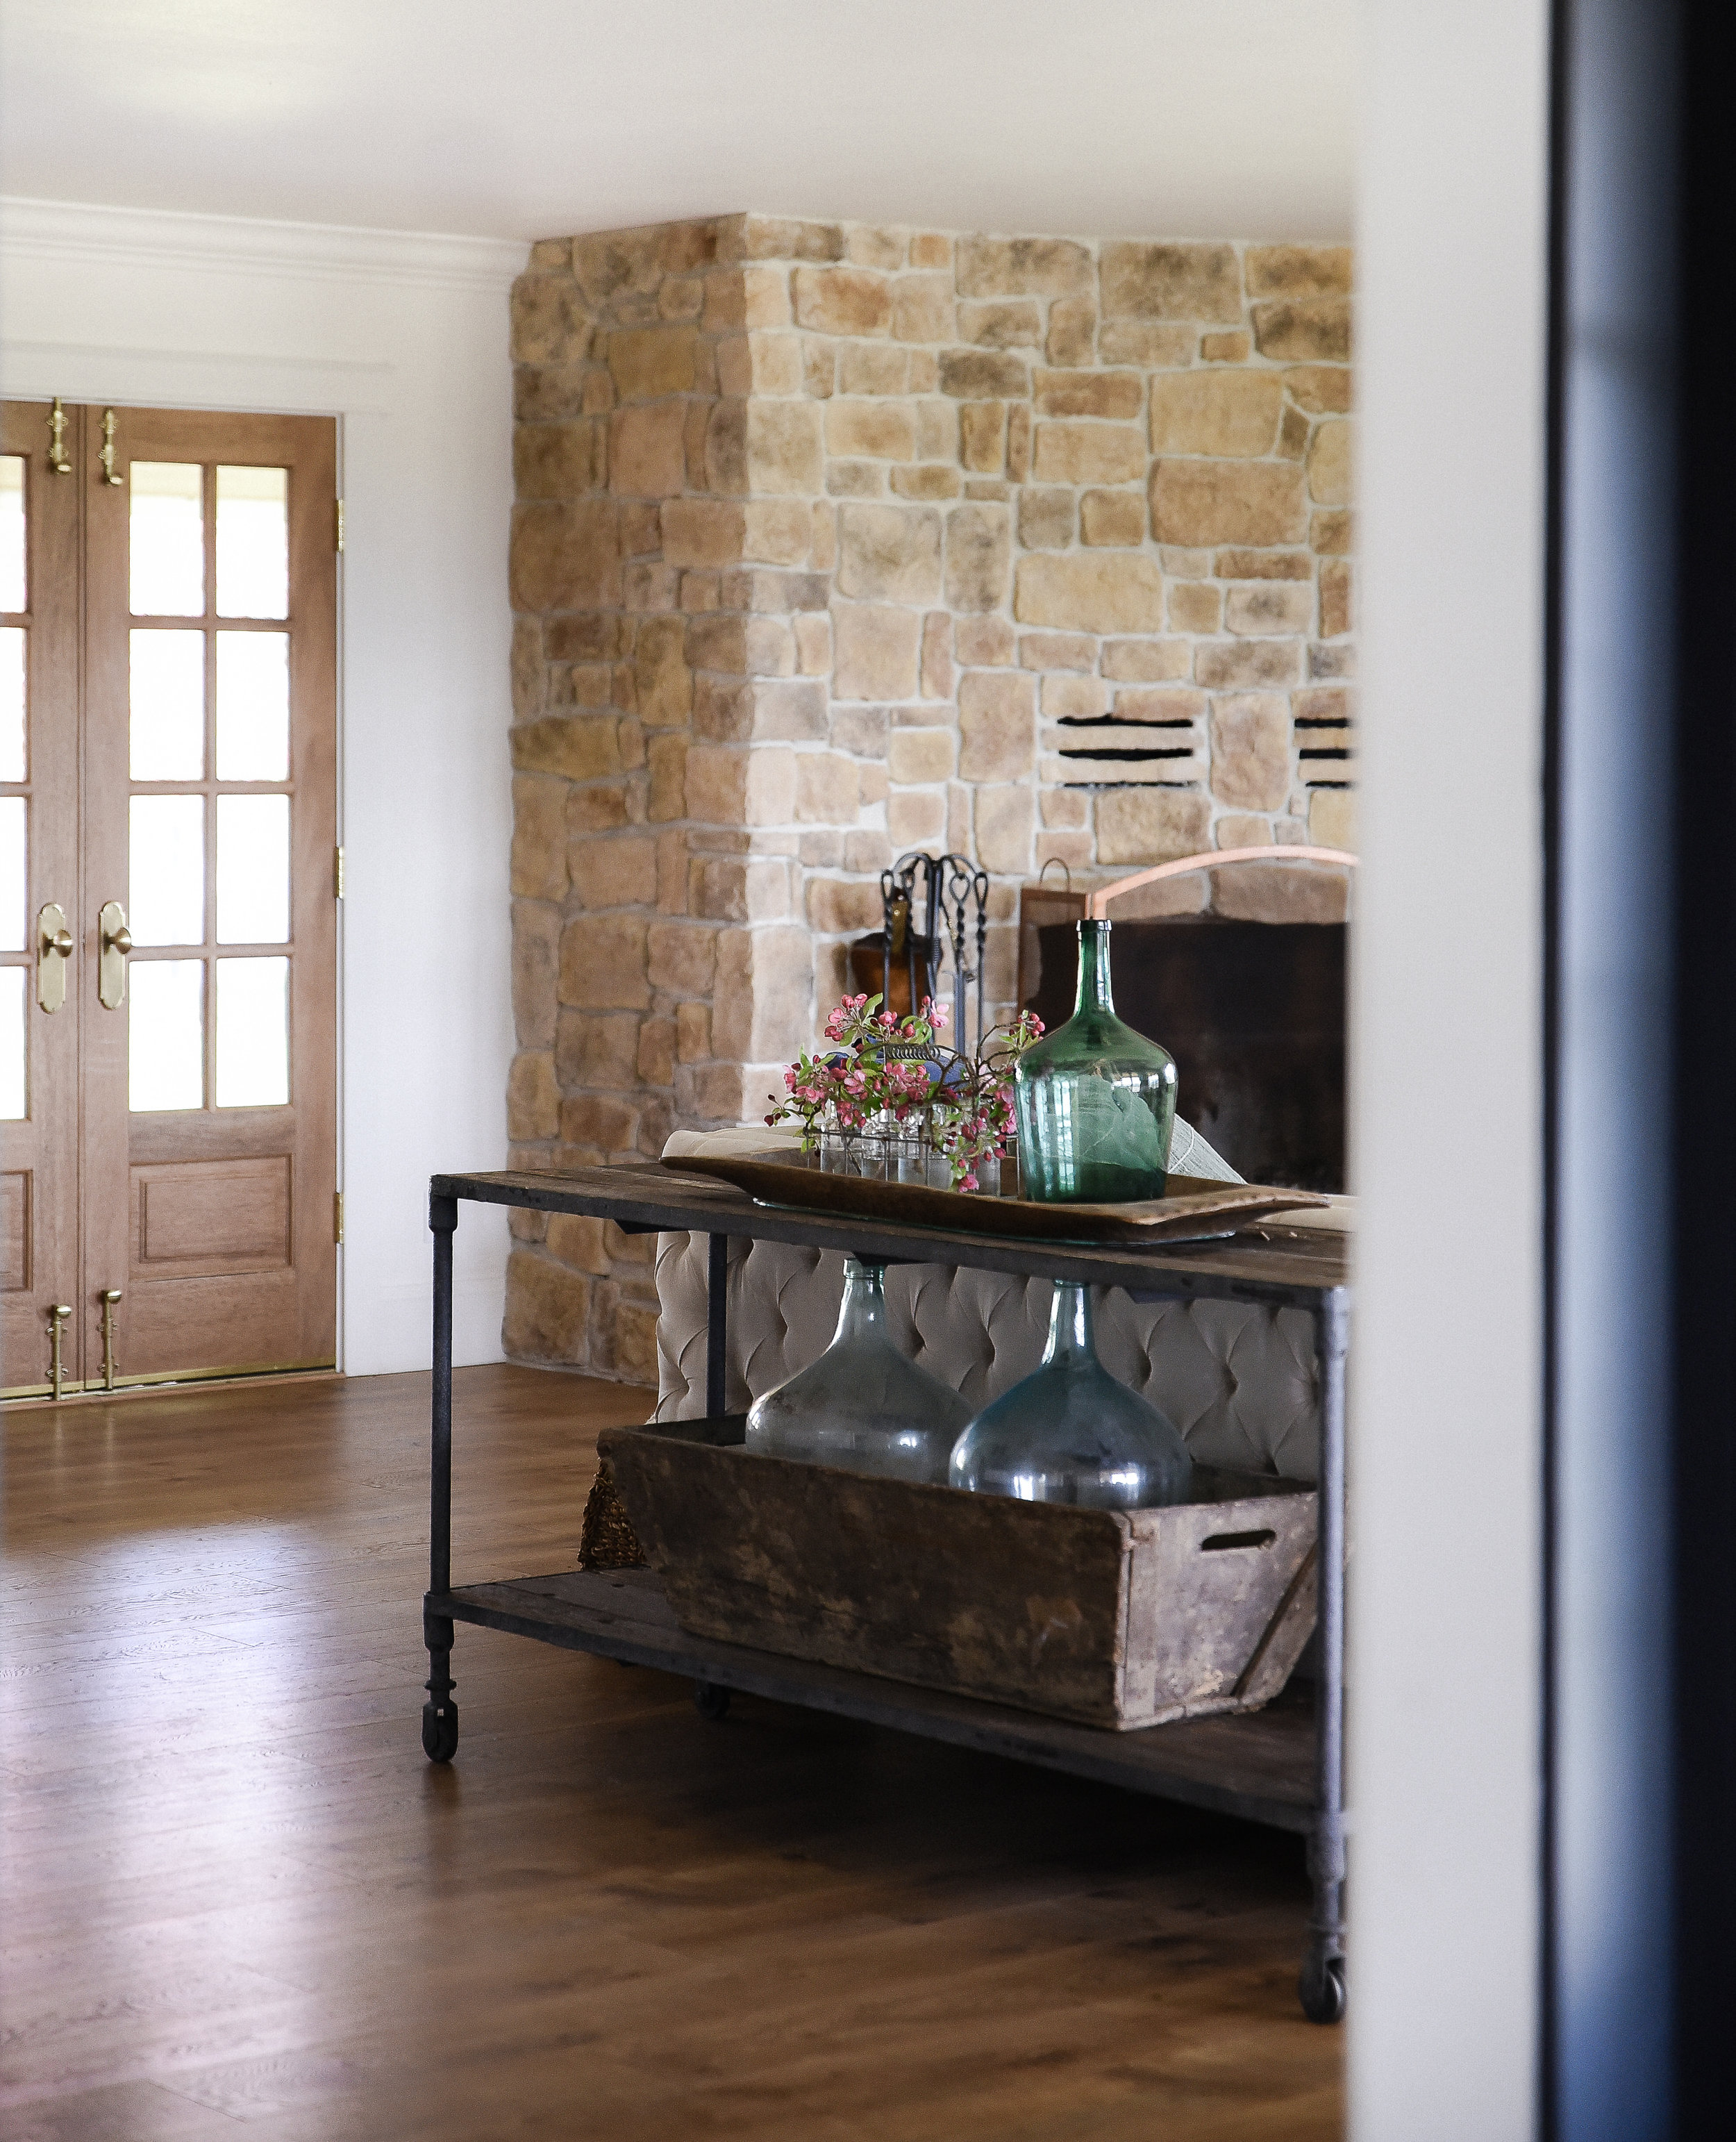 Vintage inspired European modern farmhouse with wood french doors and stone fireplace. #summerdecoratign #springdecor #farmhousestyle #boxwoodavenue